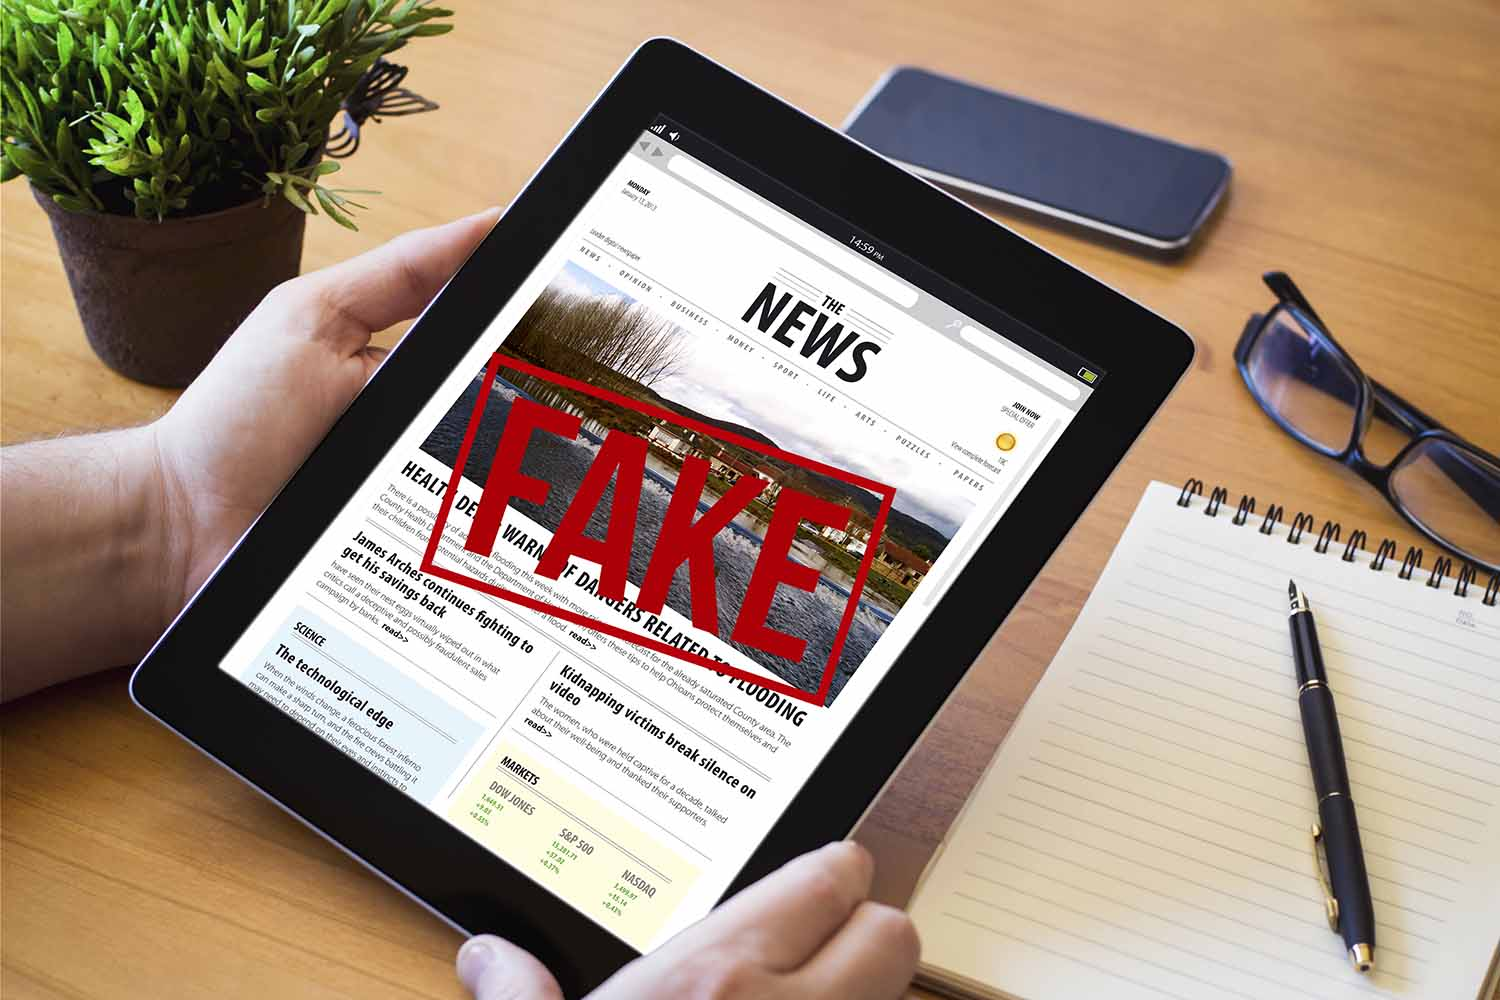 Fake Health News: How to Recognize It So You Can Stay Safe